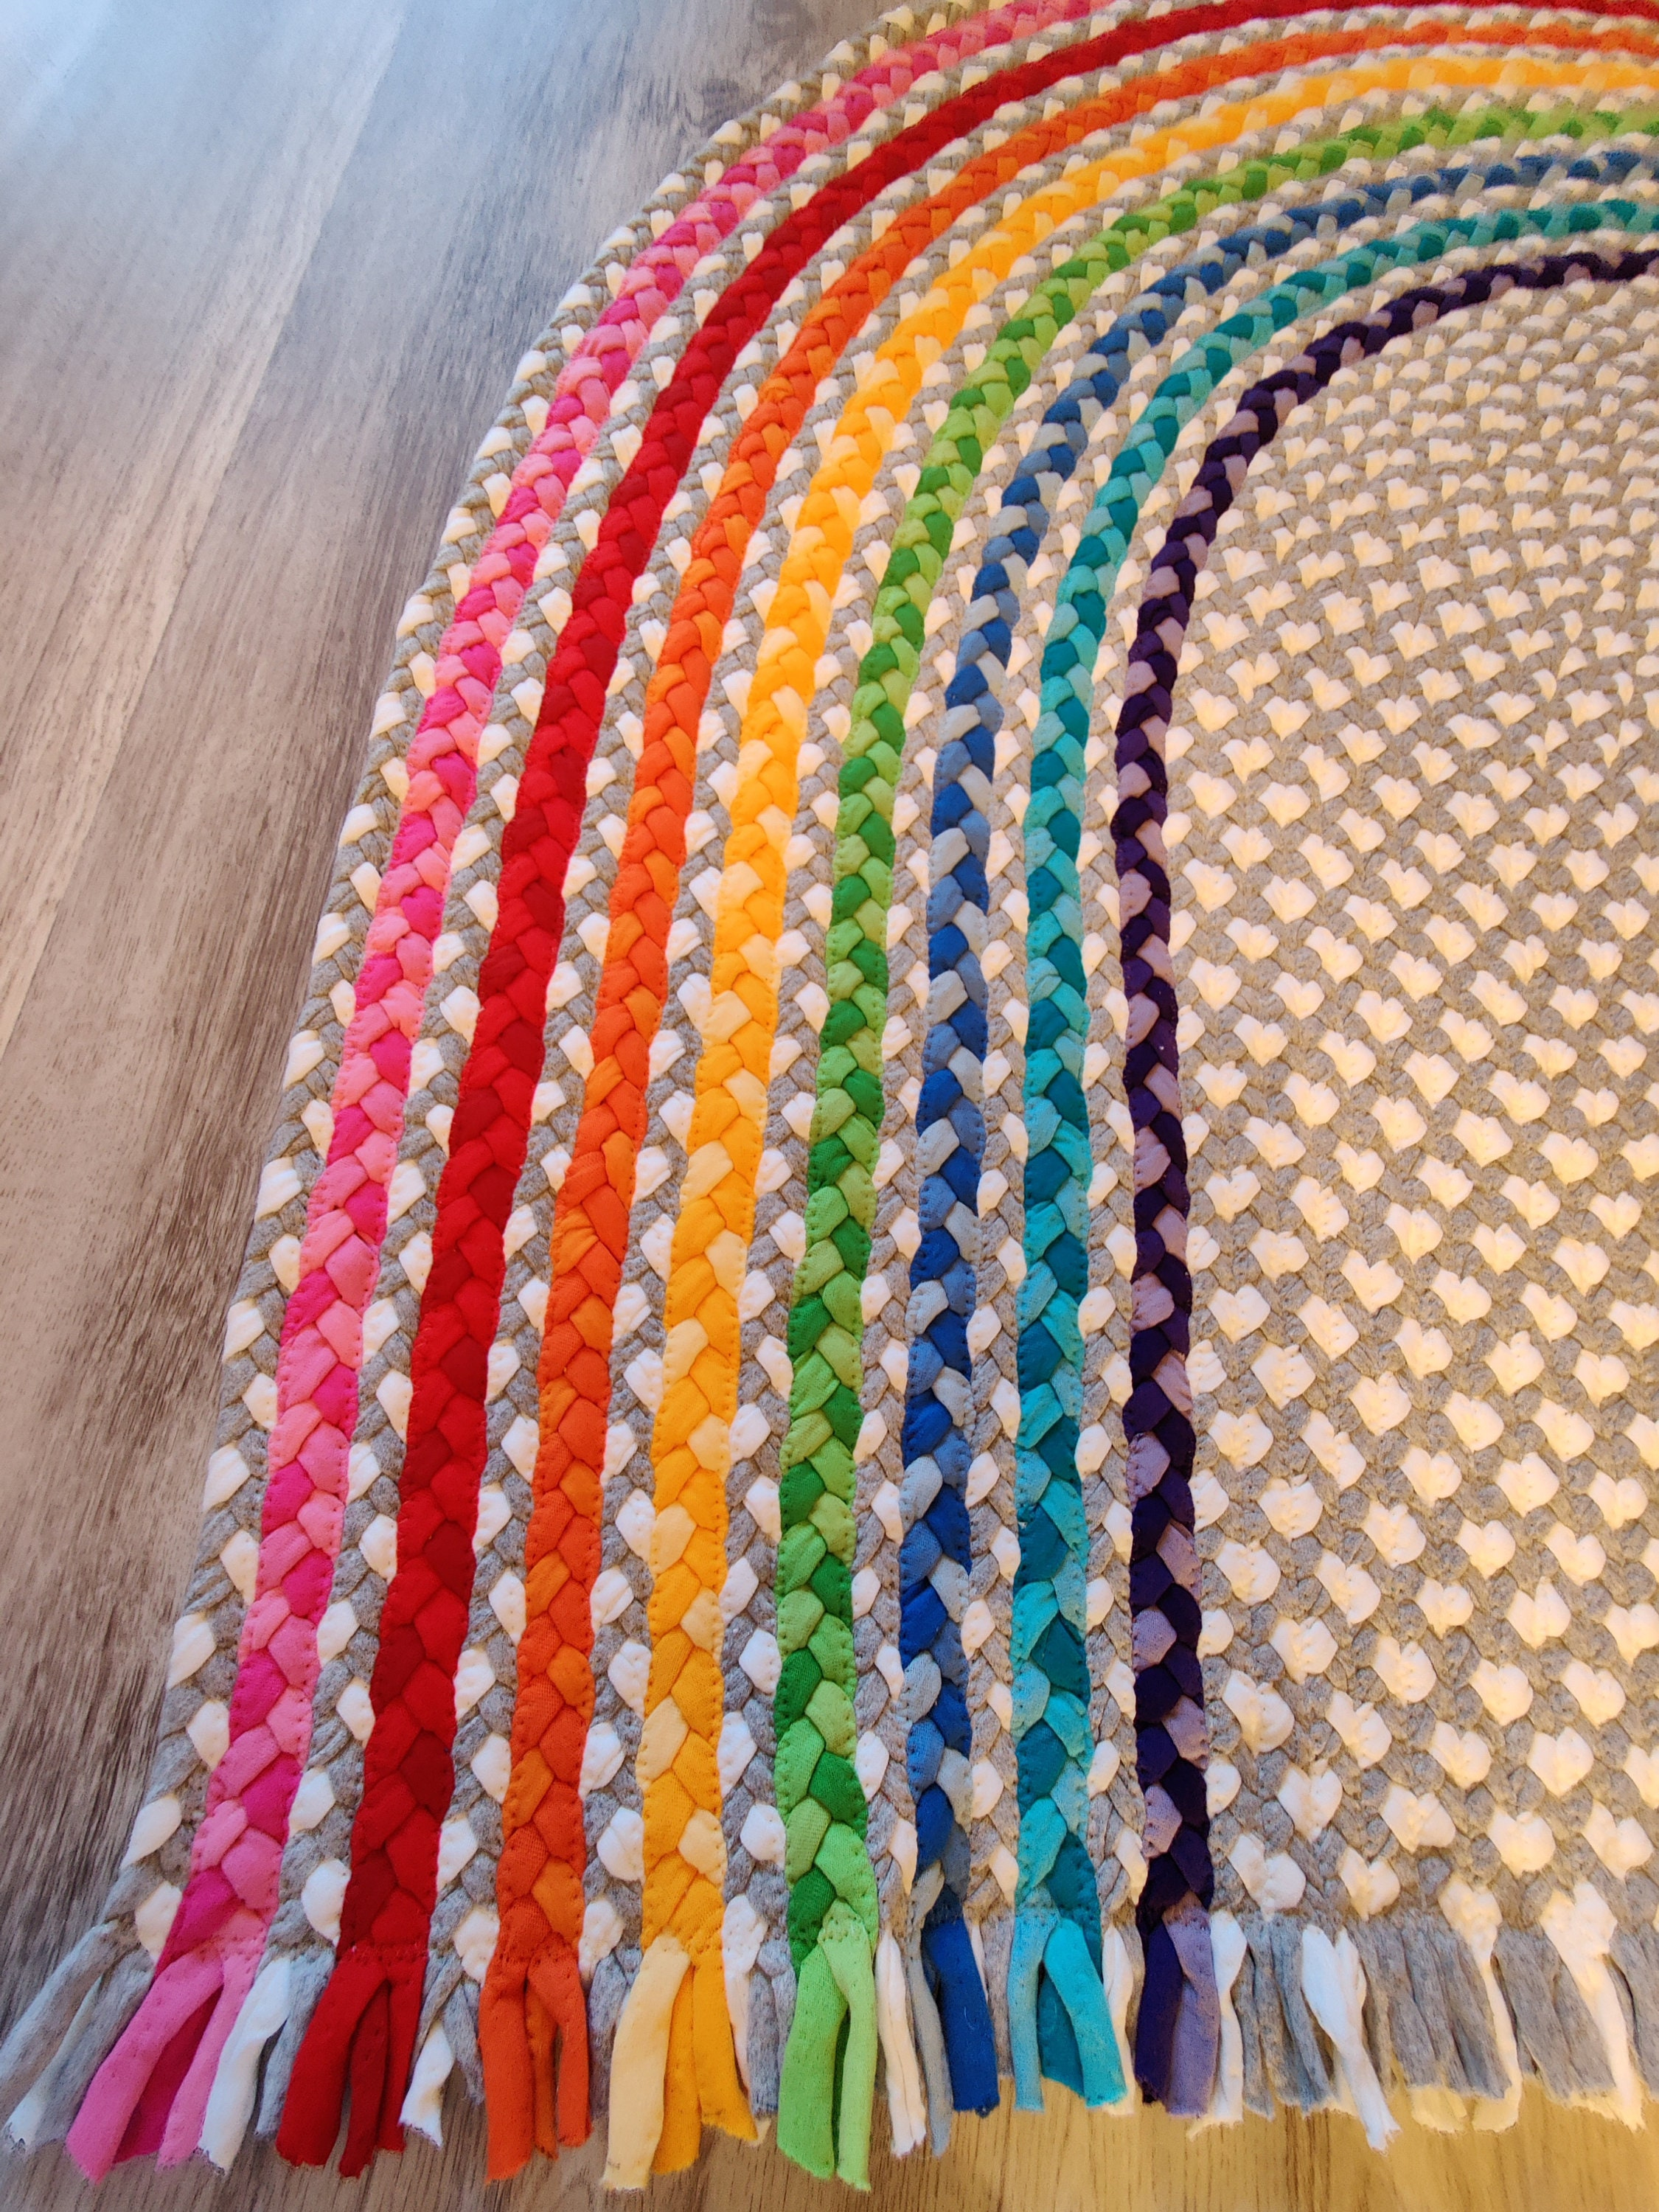 55 X 43 Rainbow Rug Made From Braided Recycled T Shirt